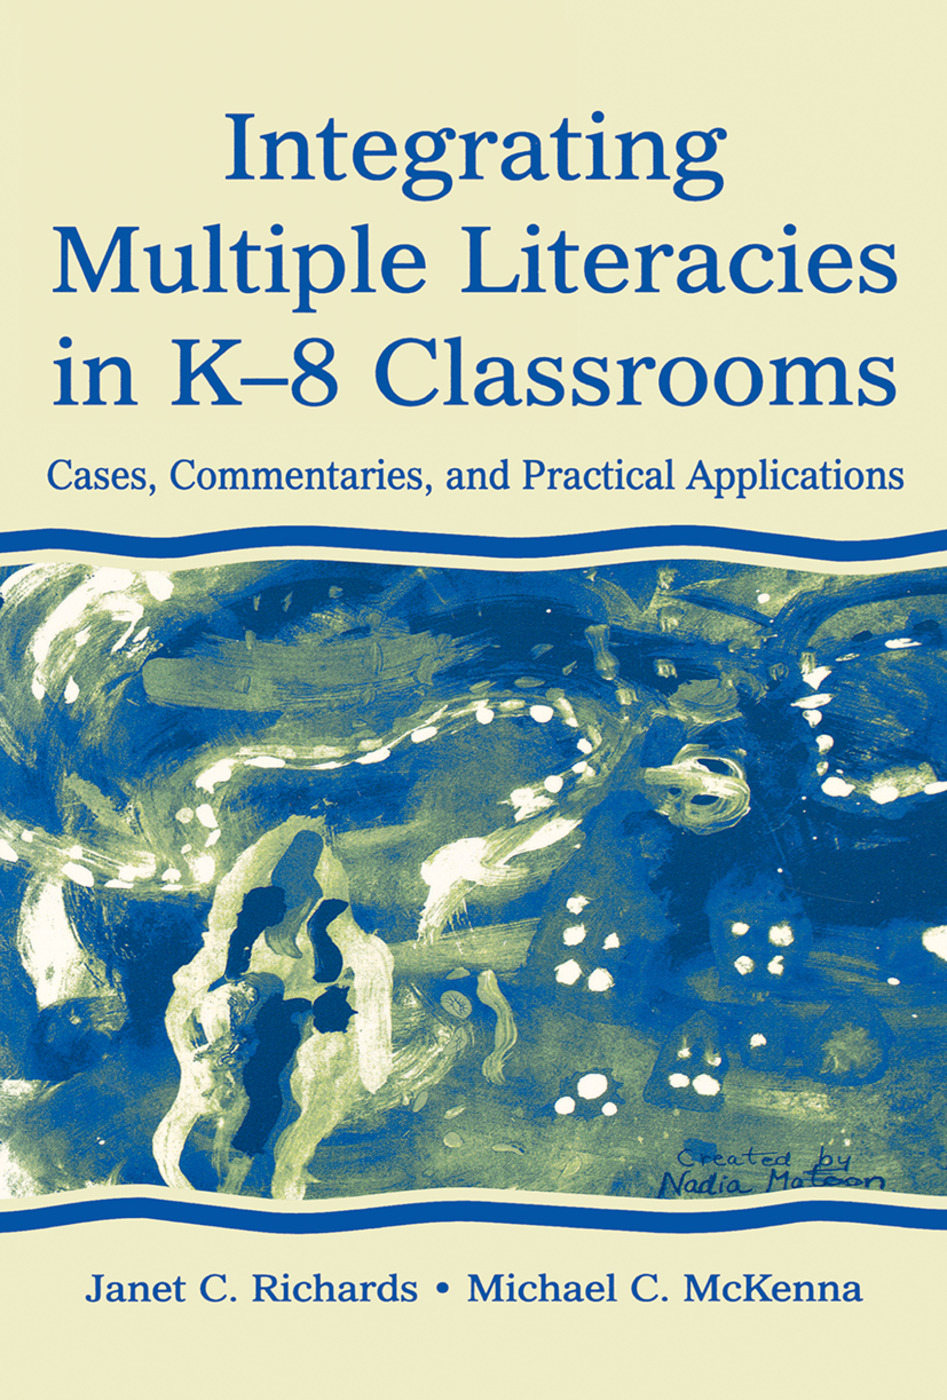 Integrating Multiple Literacies in K-8 Classrooms: Cases, Commentaries, and Practical Applications, 1st Edition (Hardback) book cover